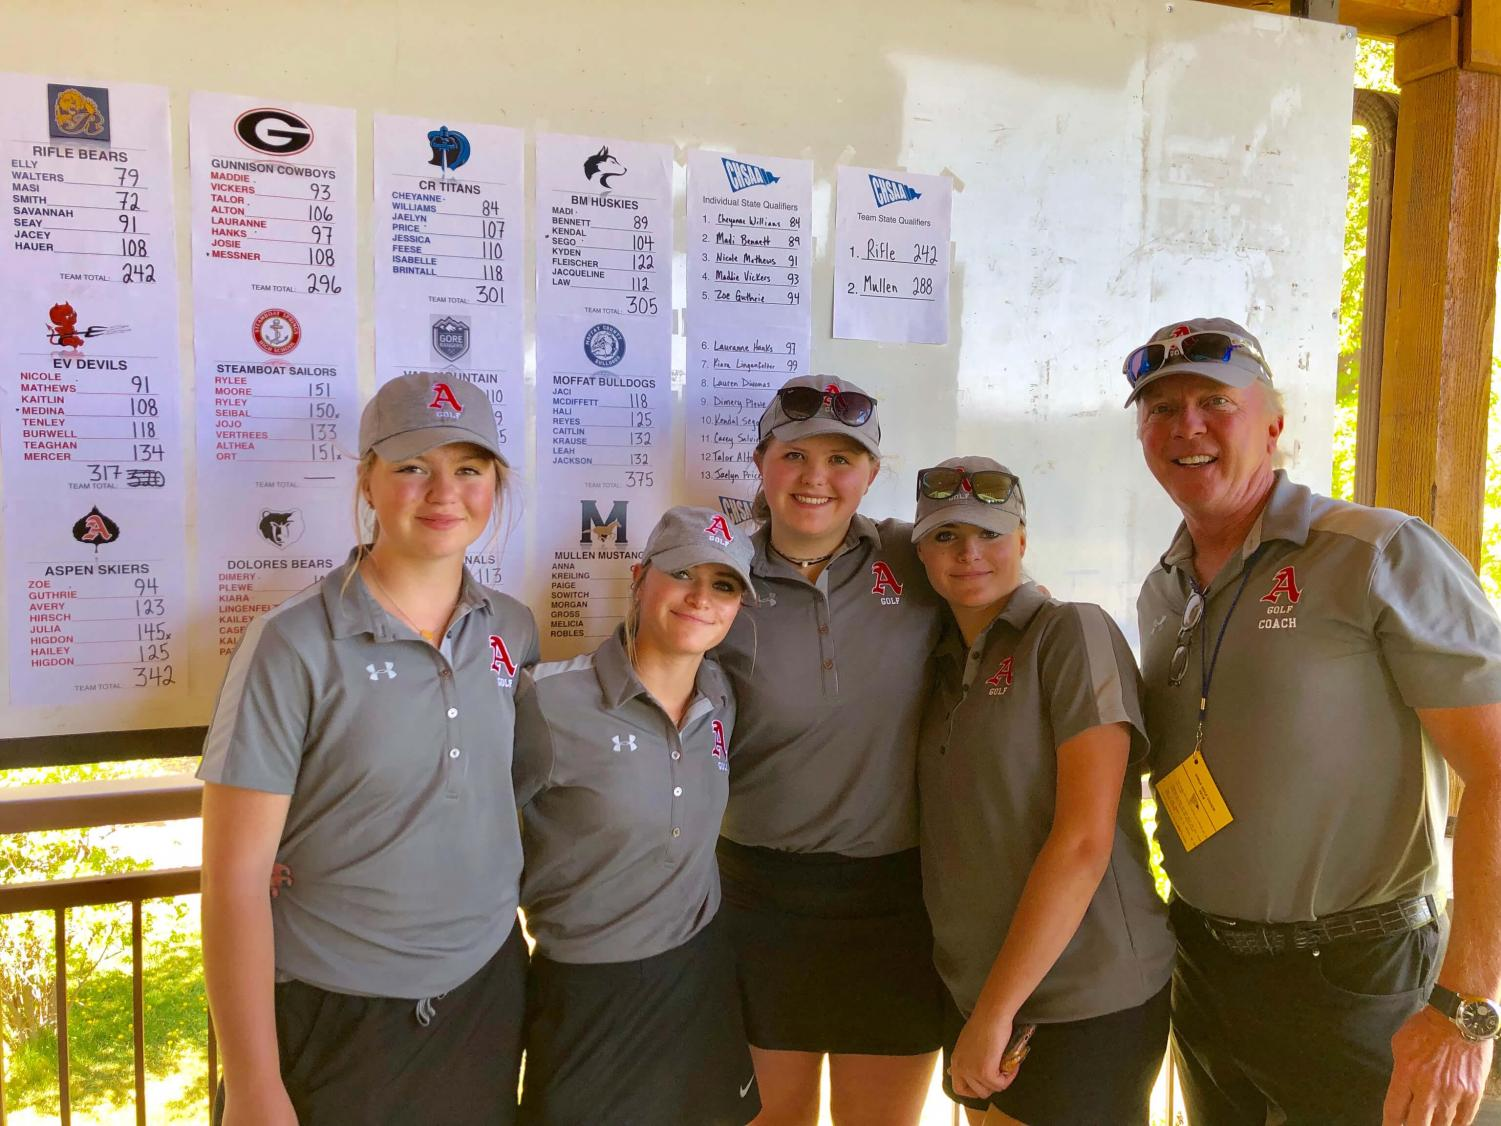 A few members of the golf team and the coach pose for a picture in front of the score board.